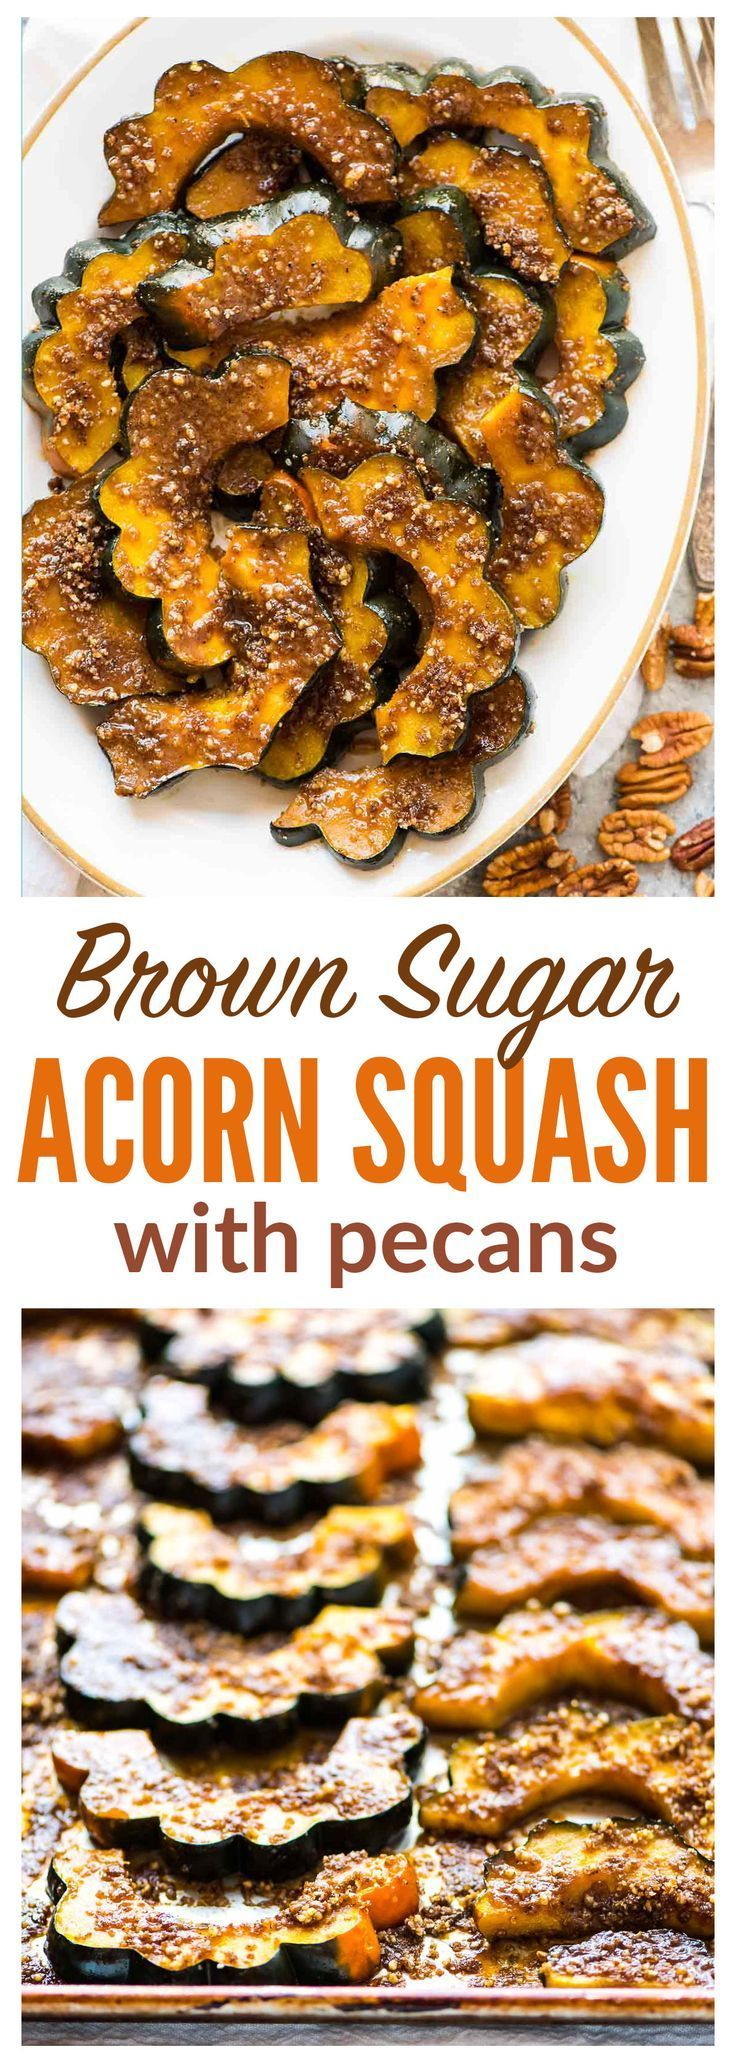 All Things Savory: Baked Acorn Squash Slices with Brown Sugar and Pec...